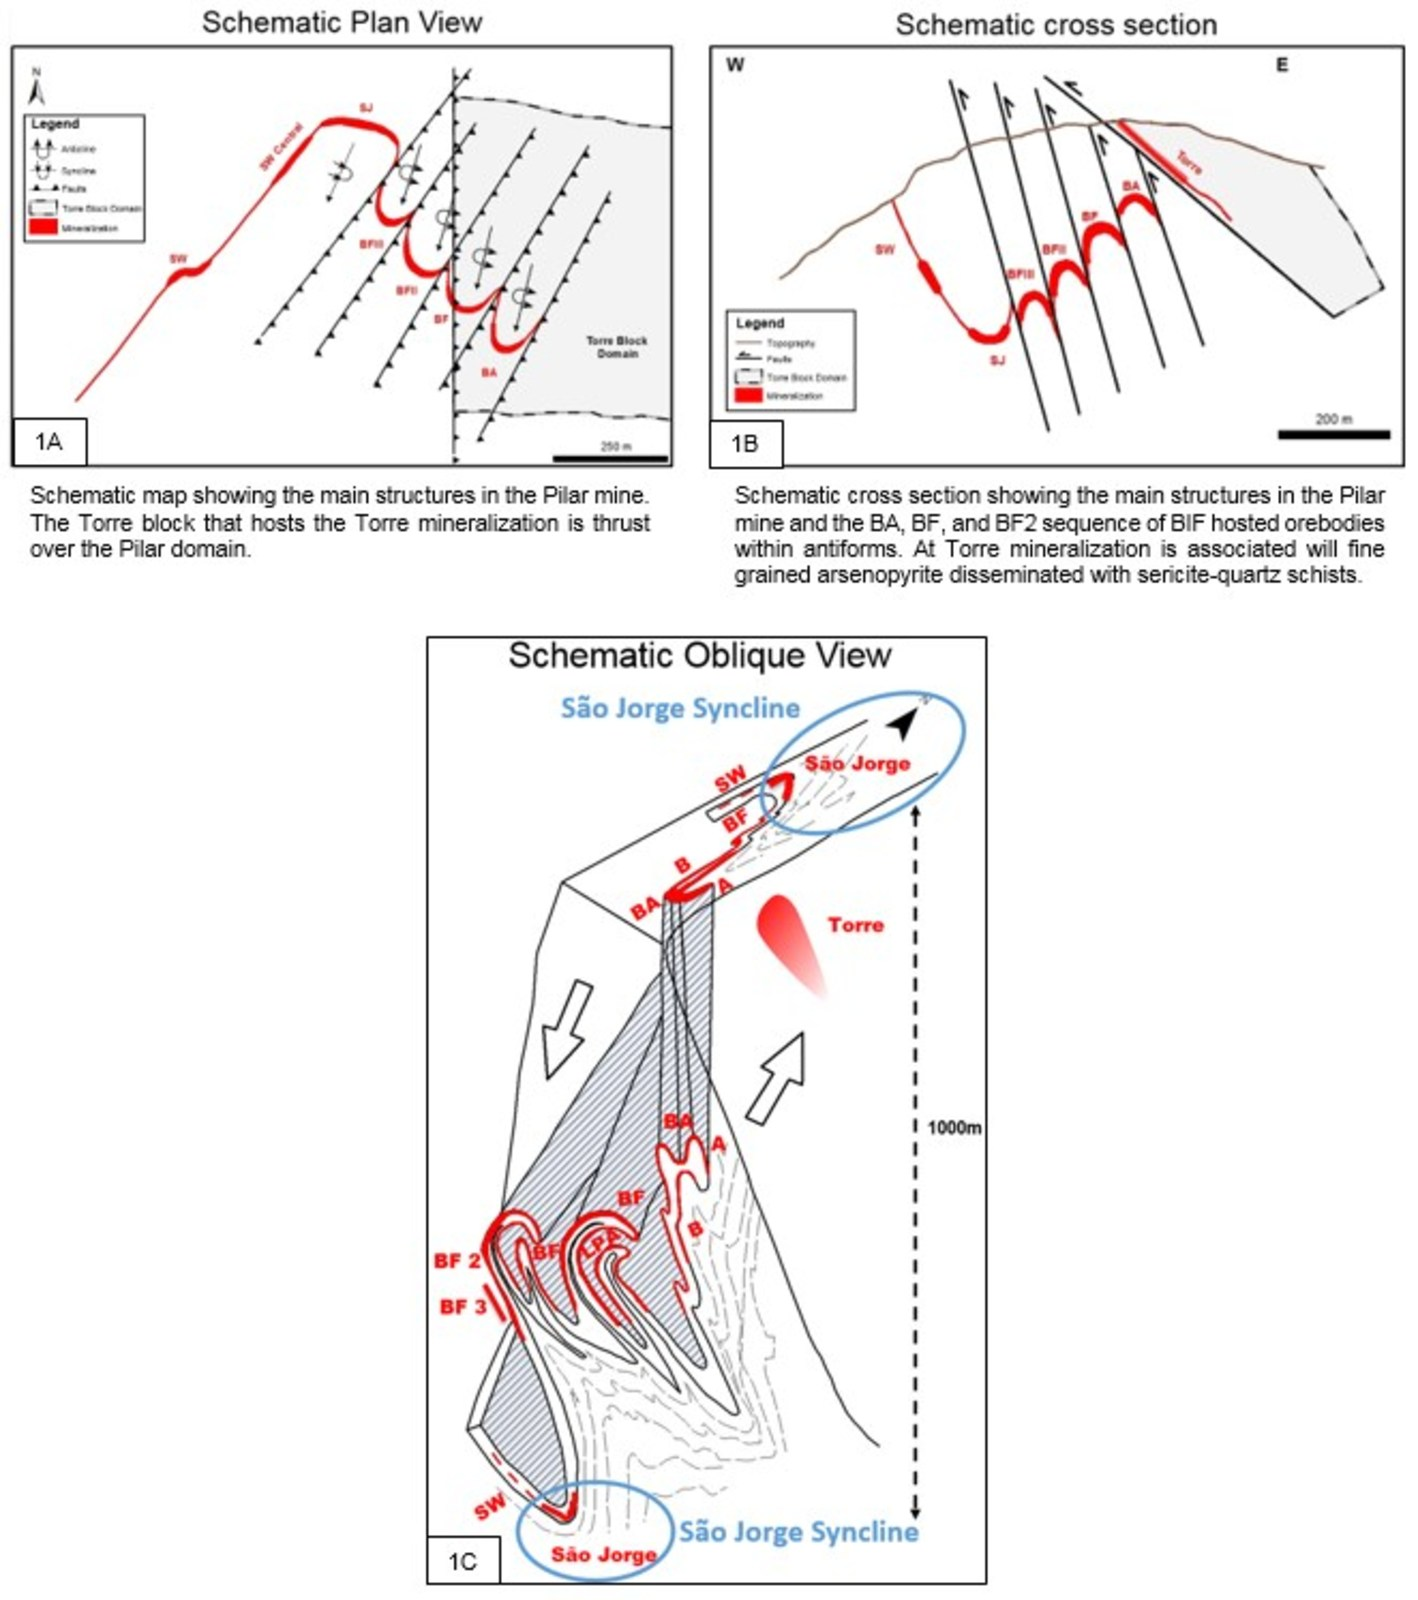 Figure 1A, 1B, 1C. Pilar Mine – Schematic Plan, Section and Oblique Views showing the relative geological settings and location of Pilar Orebodies BA, BF, BF2, Torre, SW and Sao Jorge.